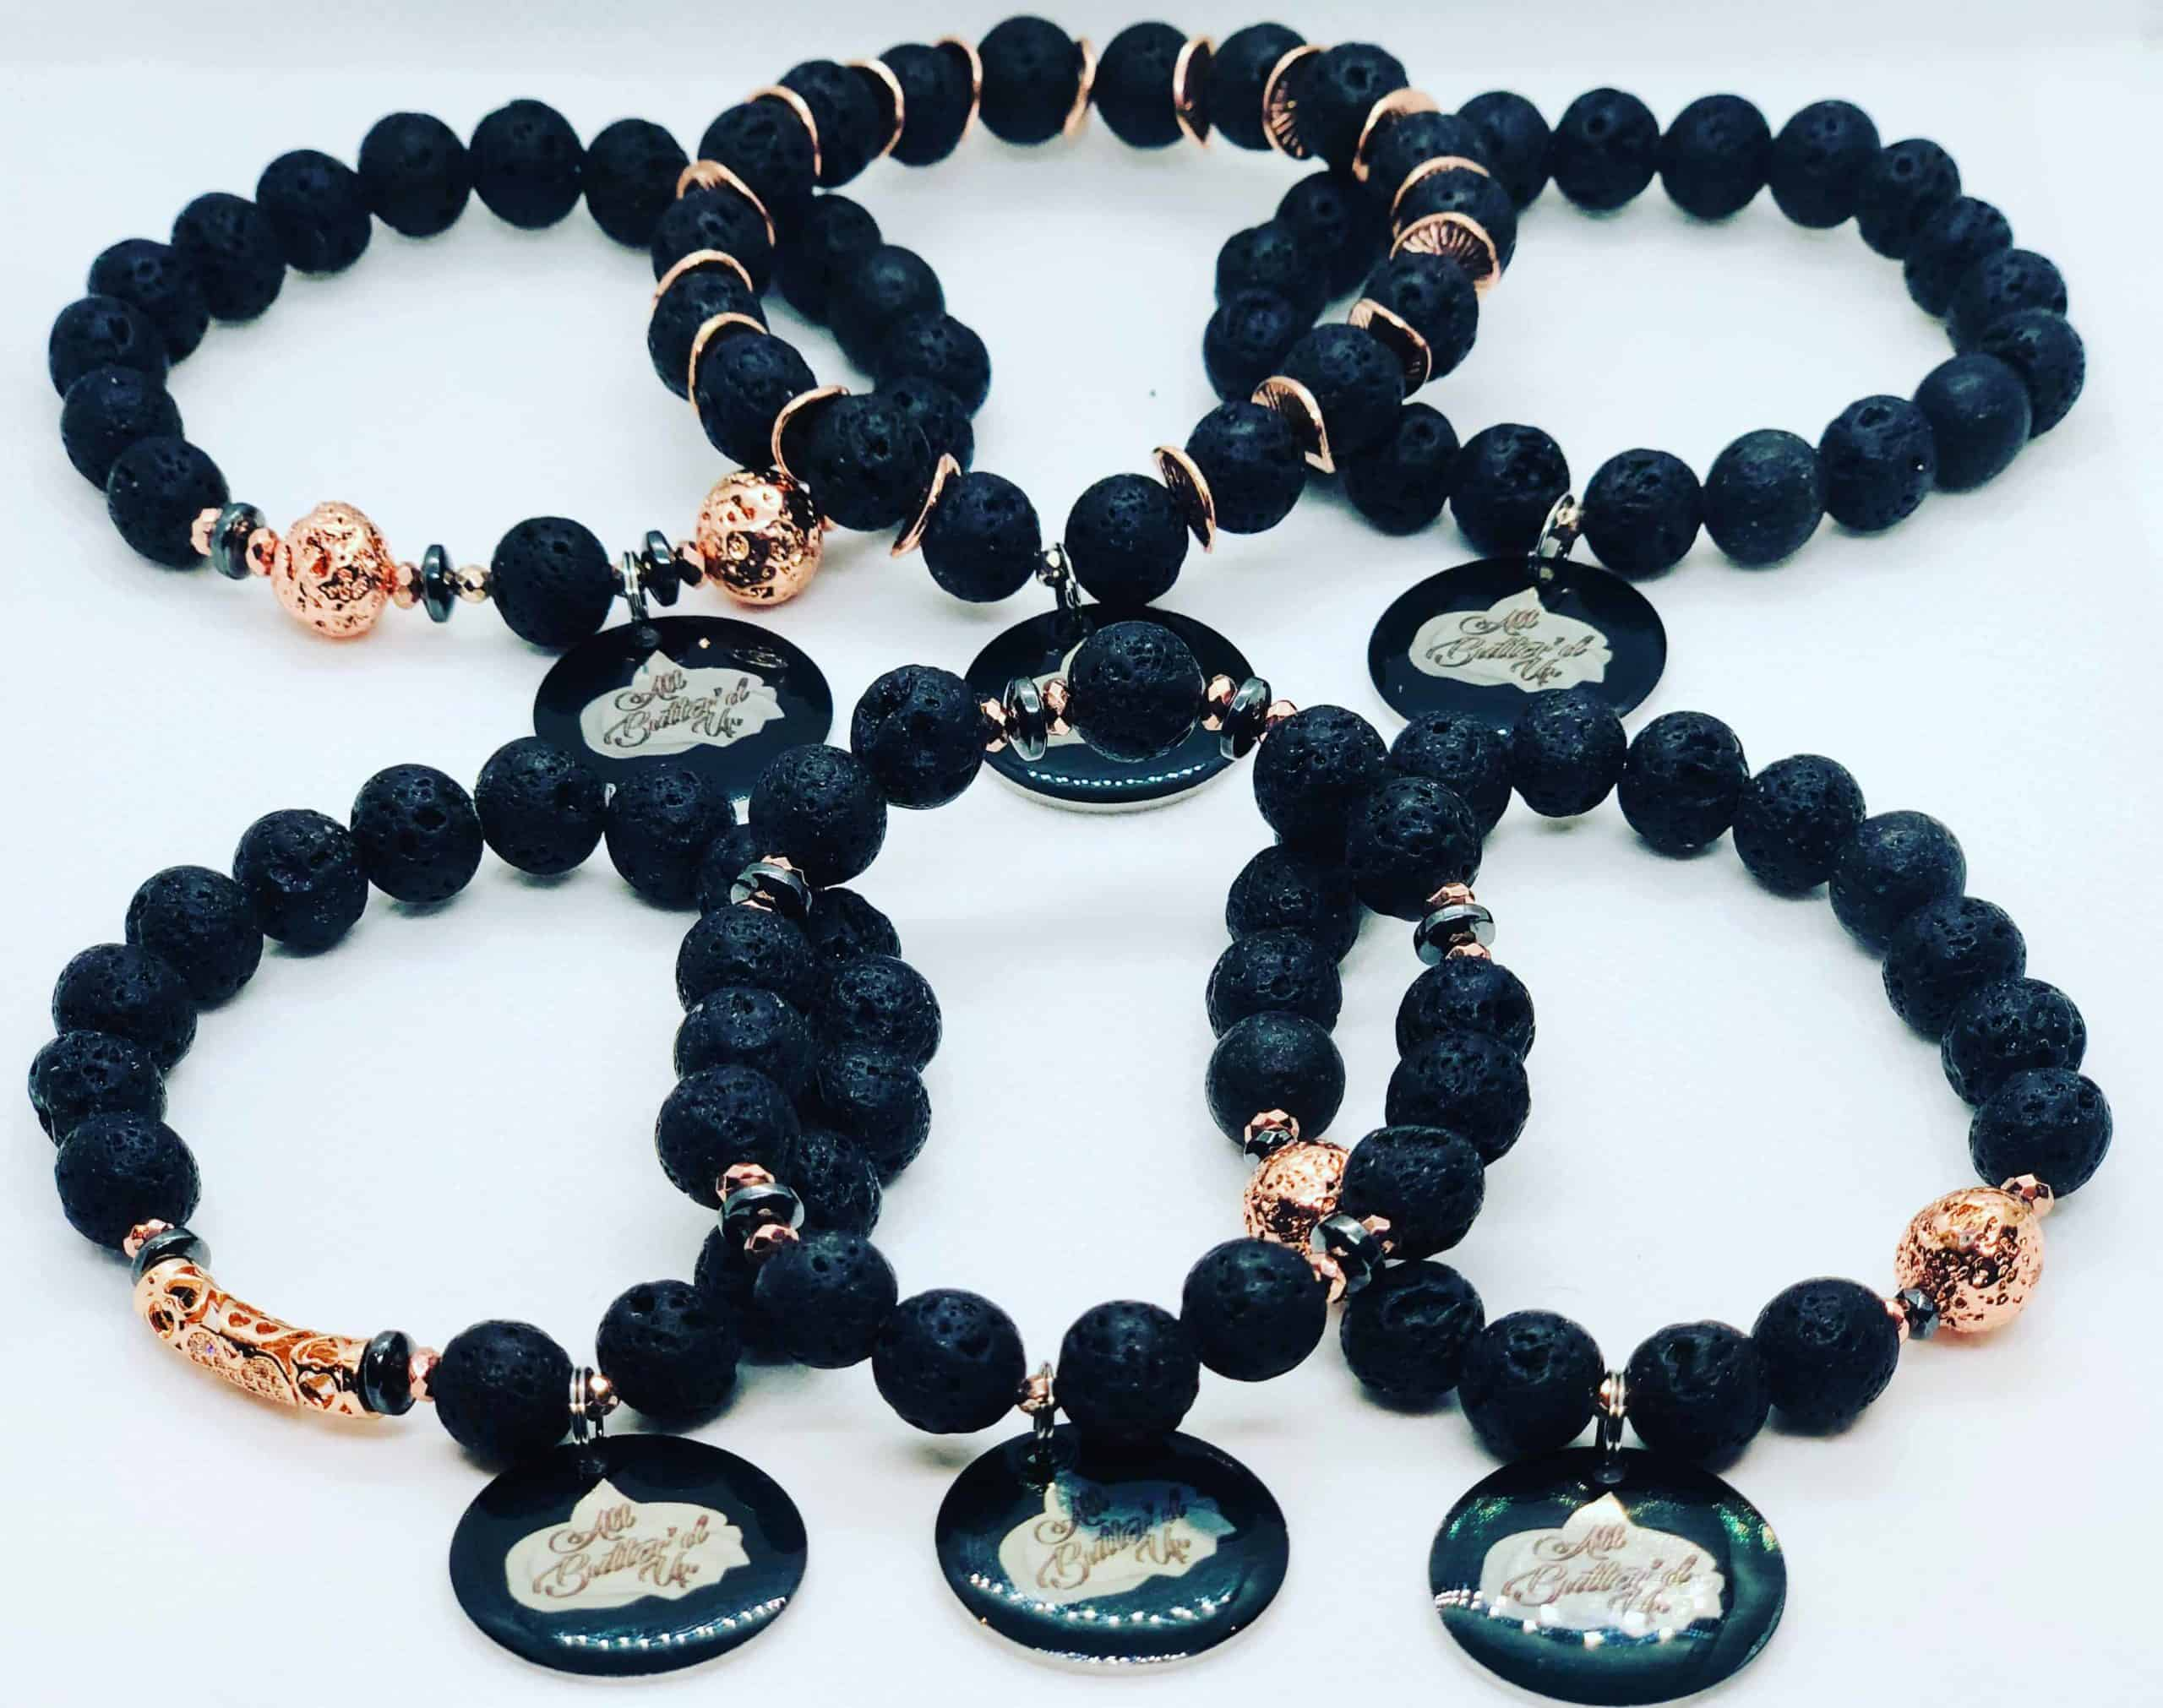 Six black lava bead bracelets with gold accents and an All butter'd up charm